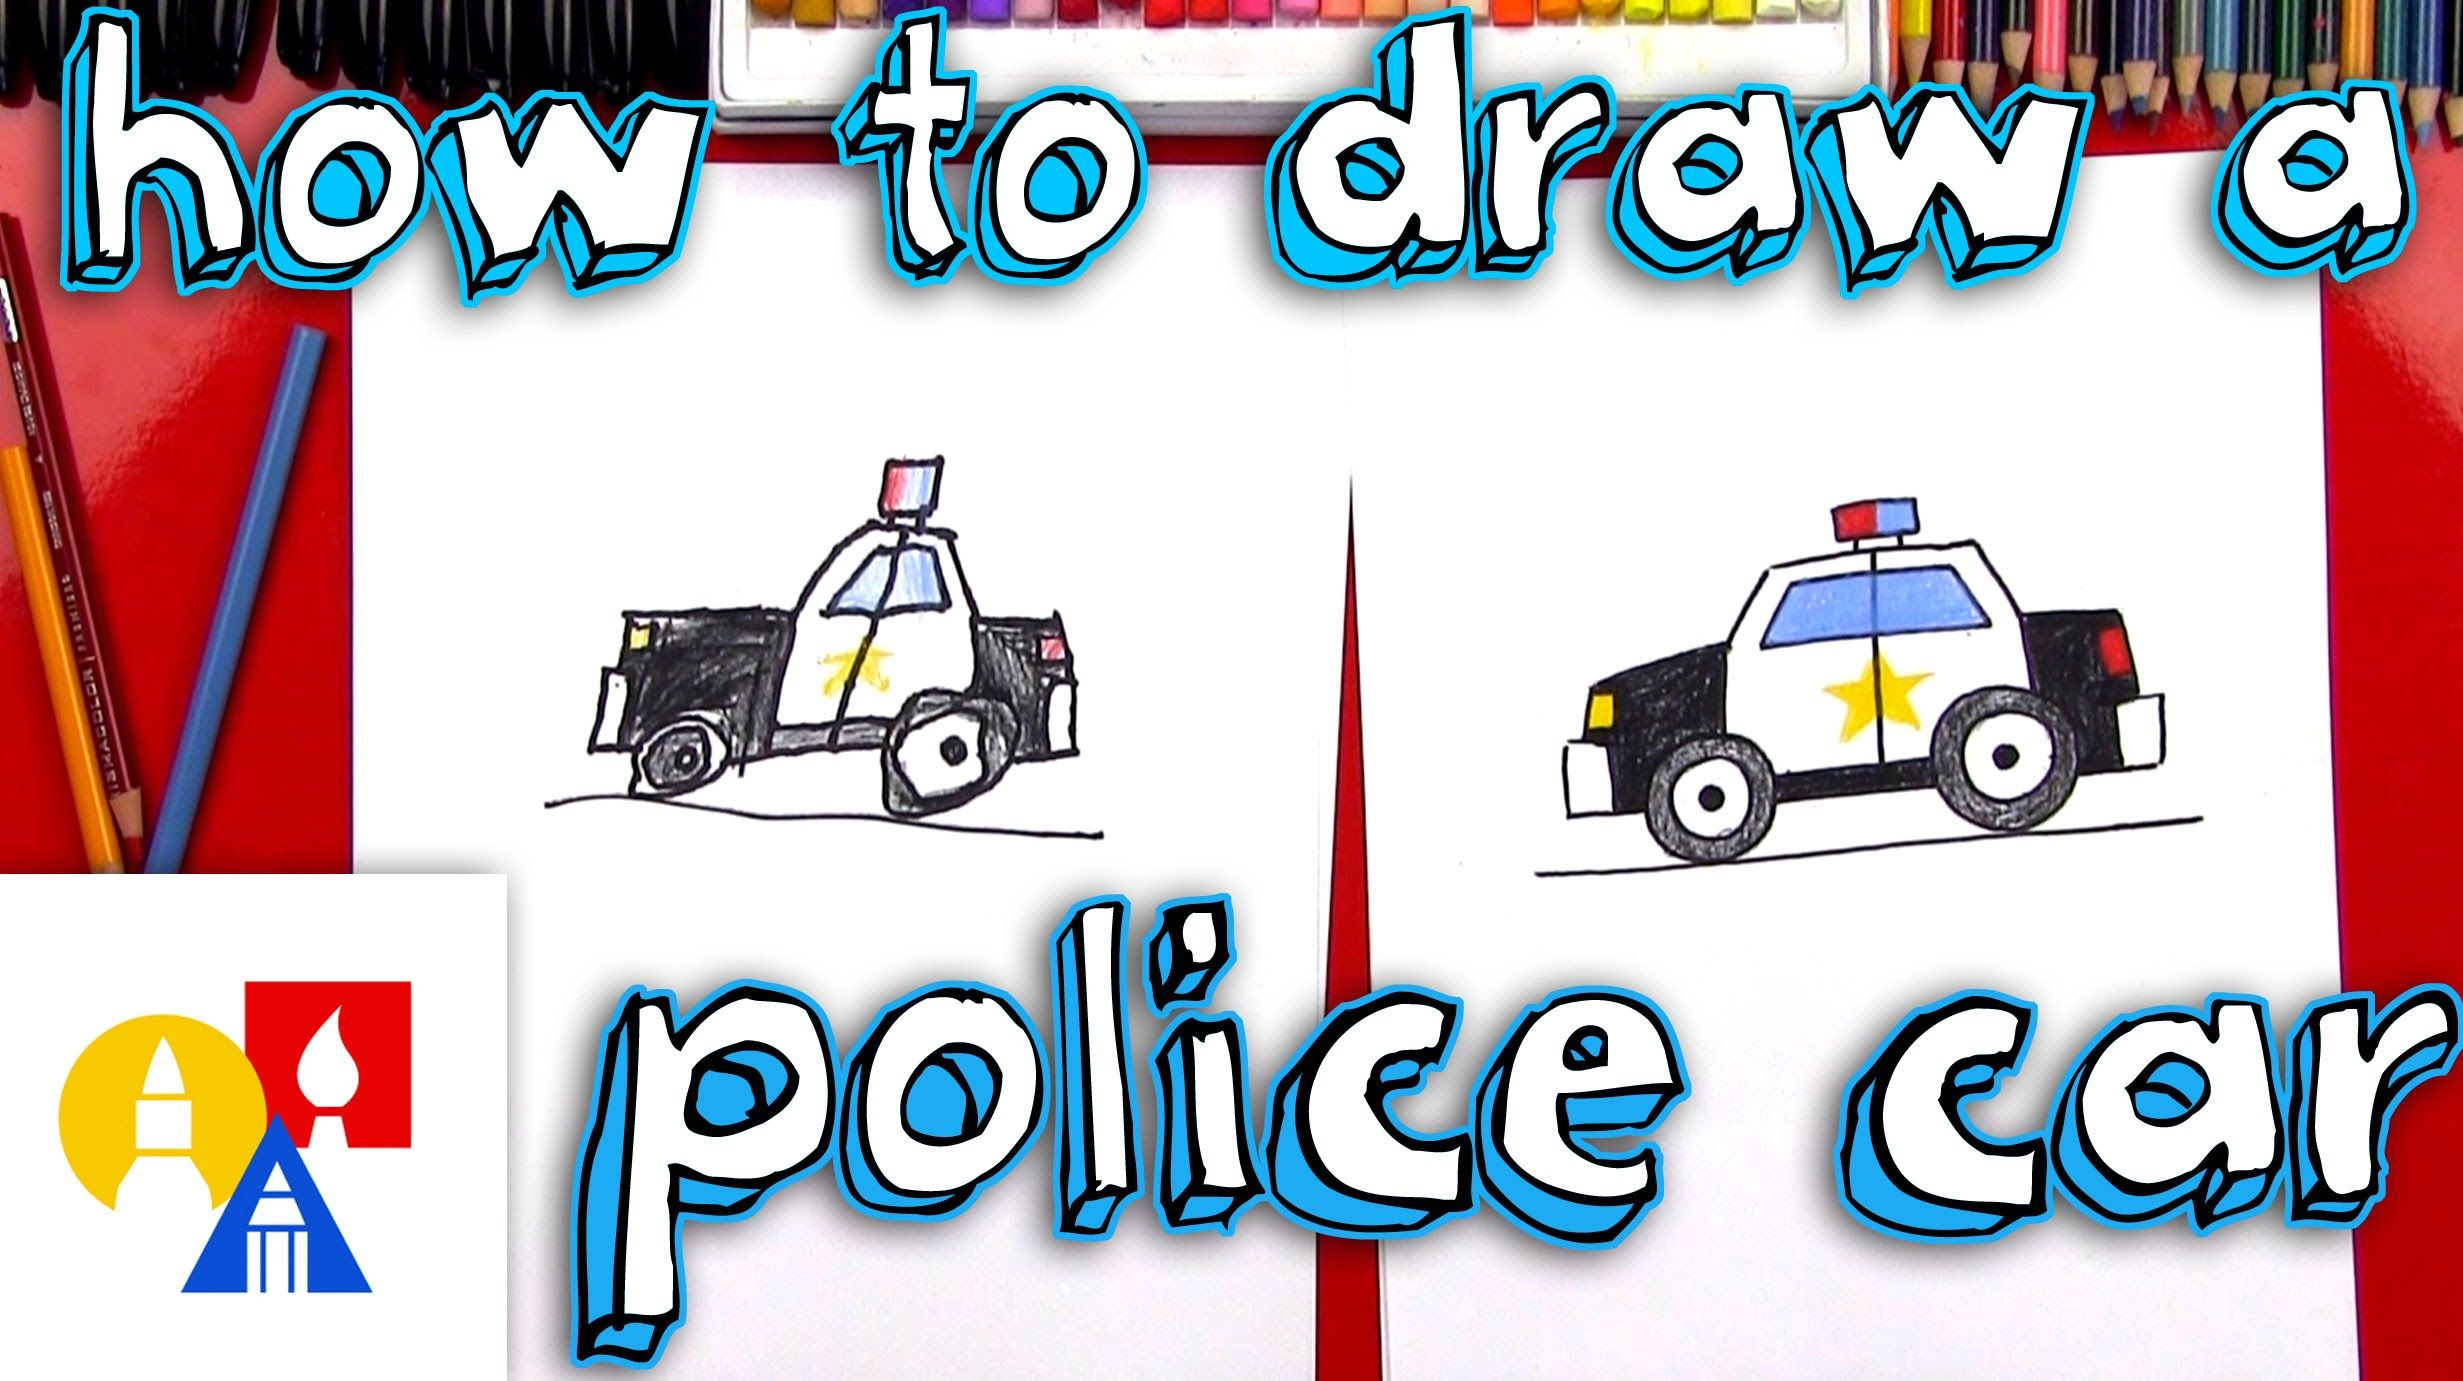 How To Draw A Cartoon Police Car With Images Art For Kids Hub